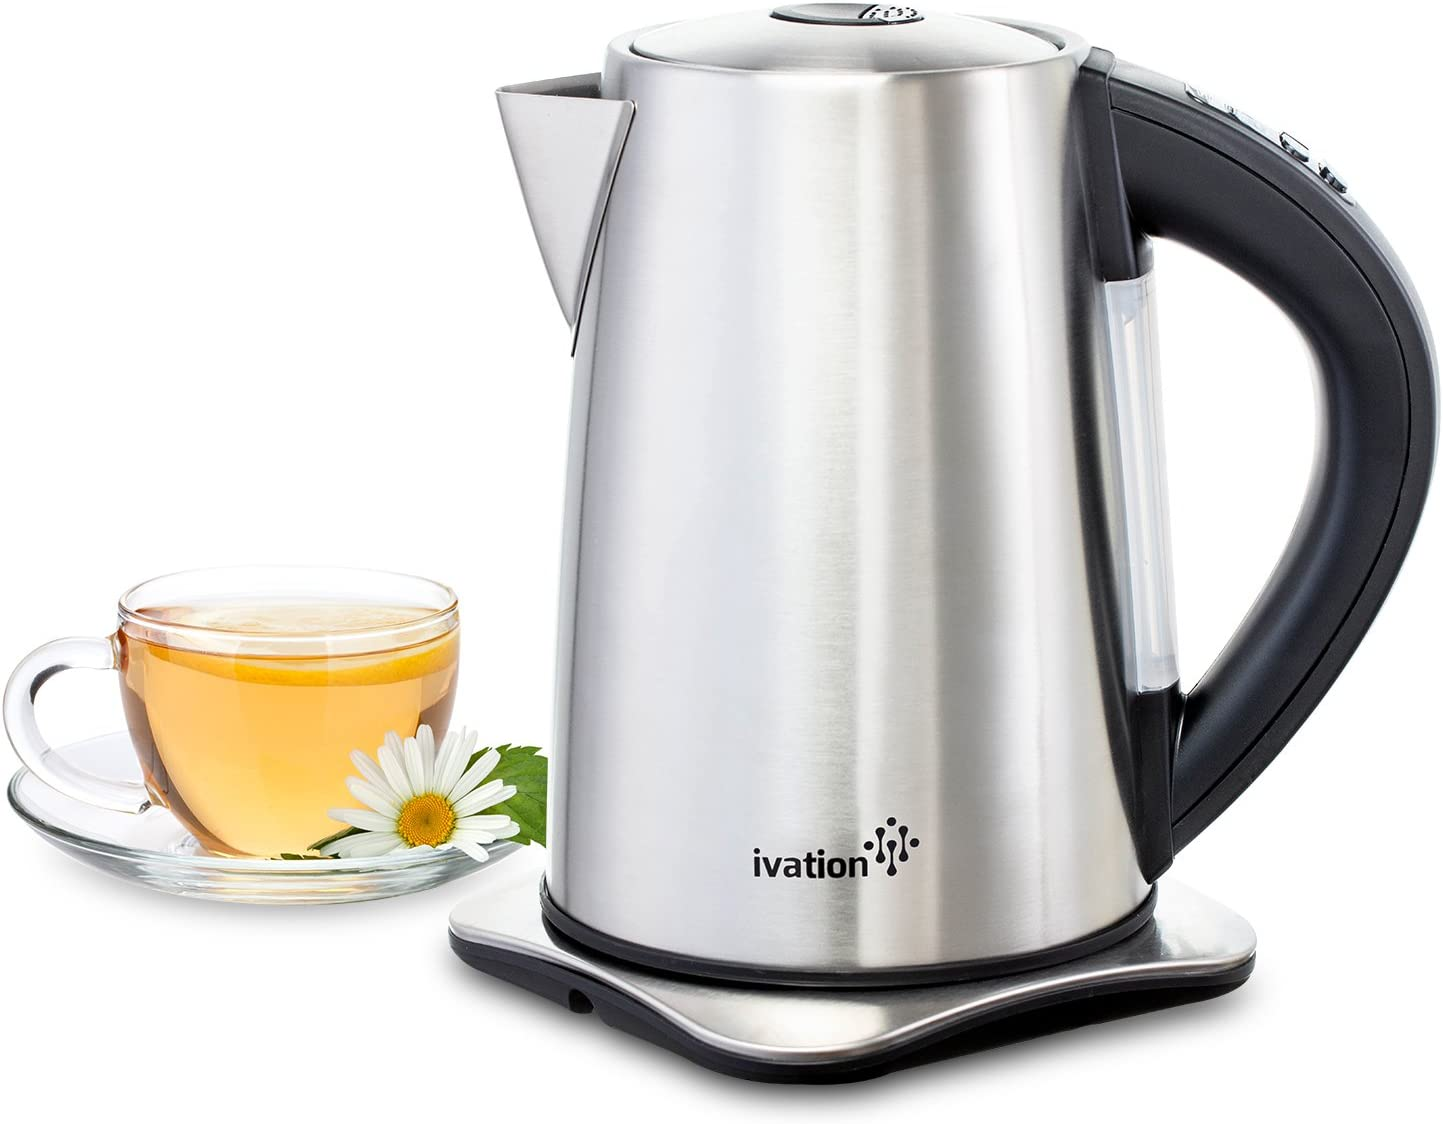 Ivation Precision-Temperature Electric Hot Water Tea Kettle Pot 1.7 Liter 7-Cup , 1500 Watt, Stainless Steel Cordless, 6 Preset Variable Heat Settings for Tea, Coffee or Baby Formula